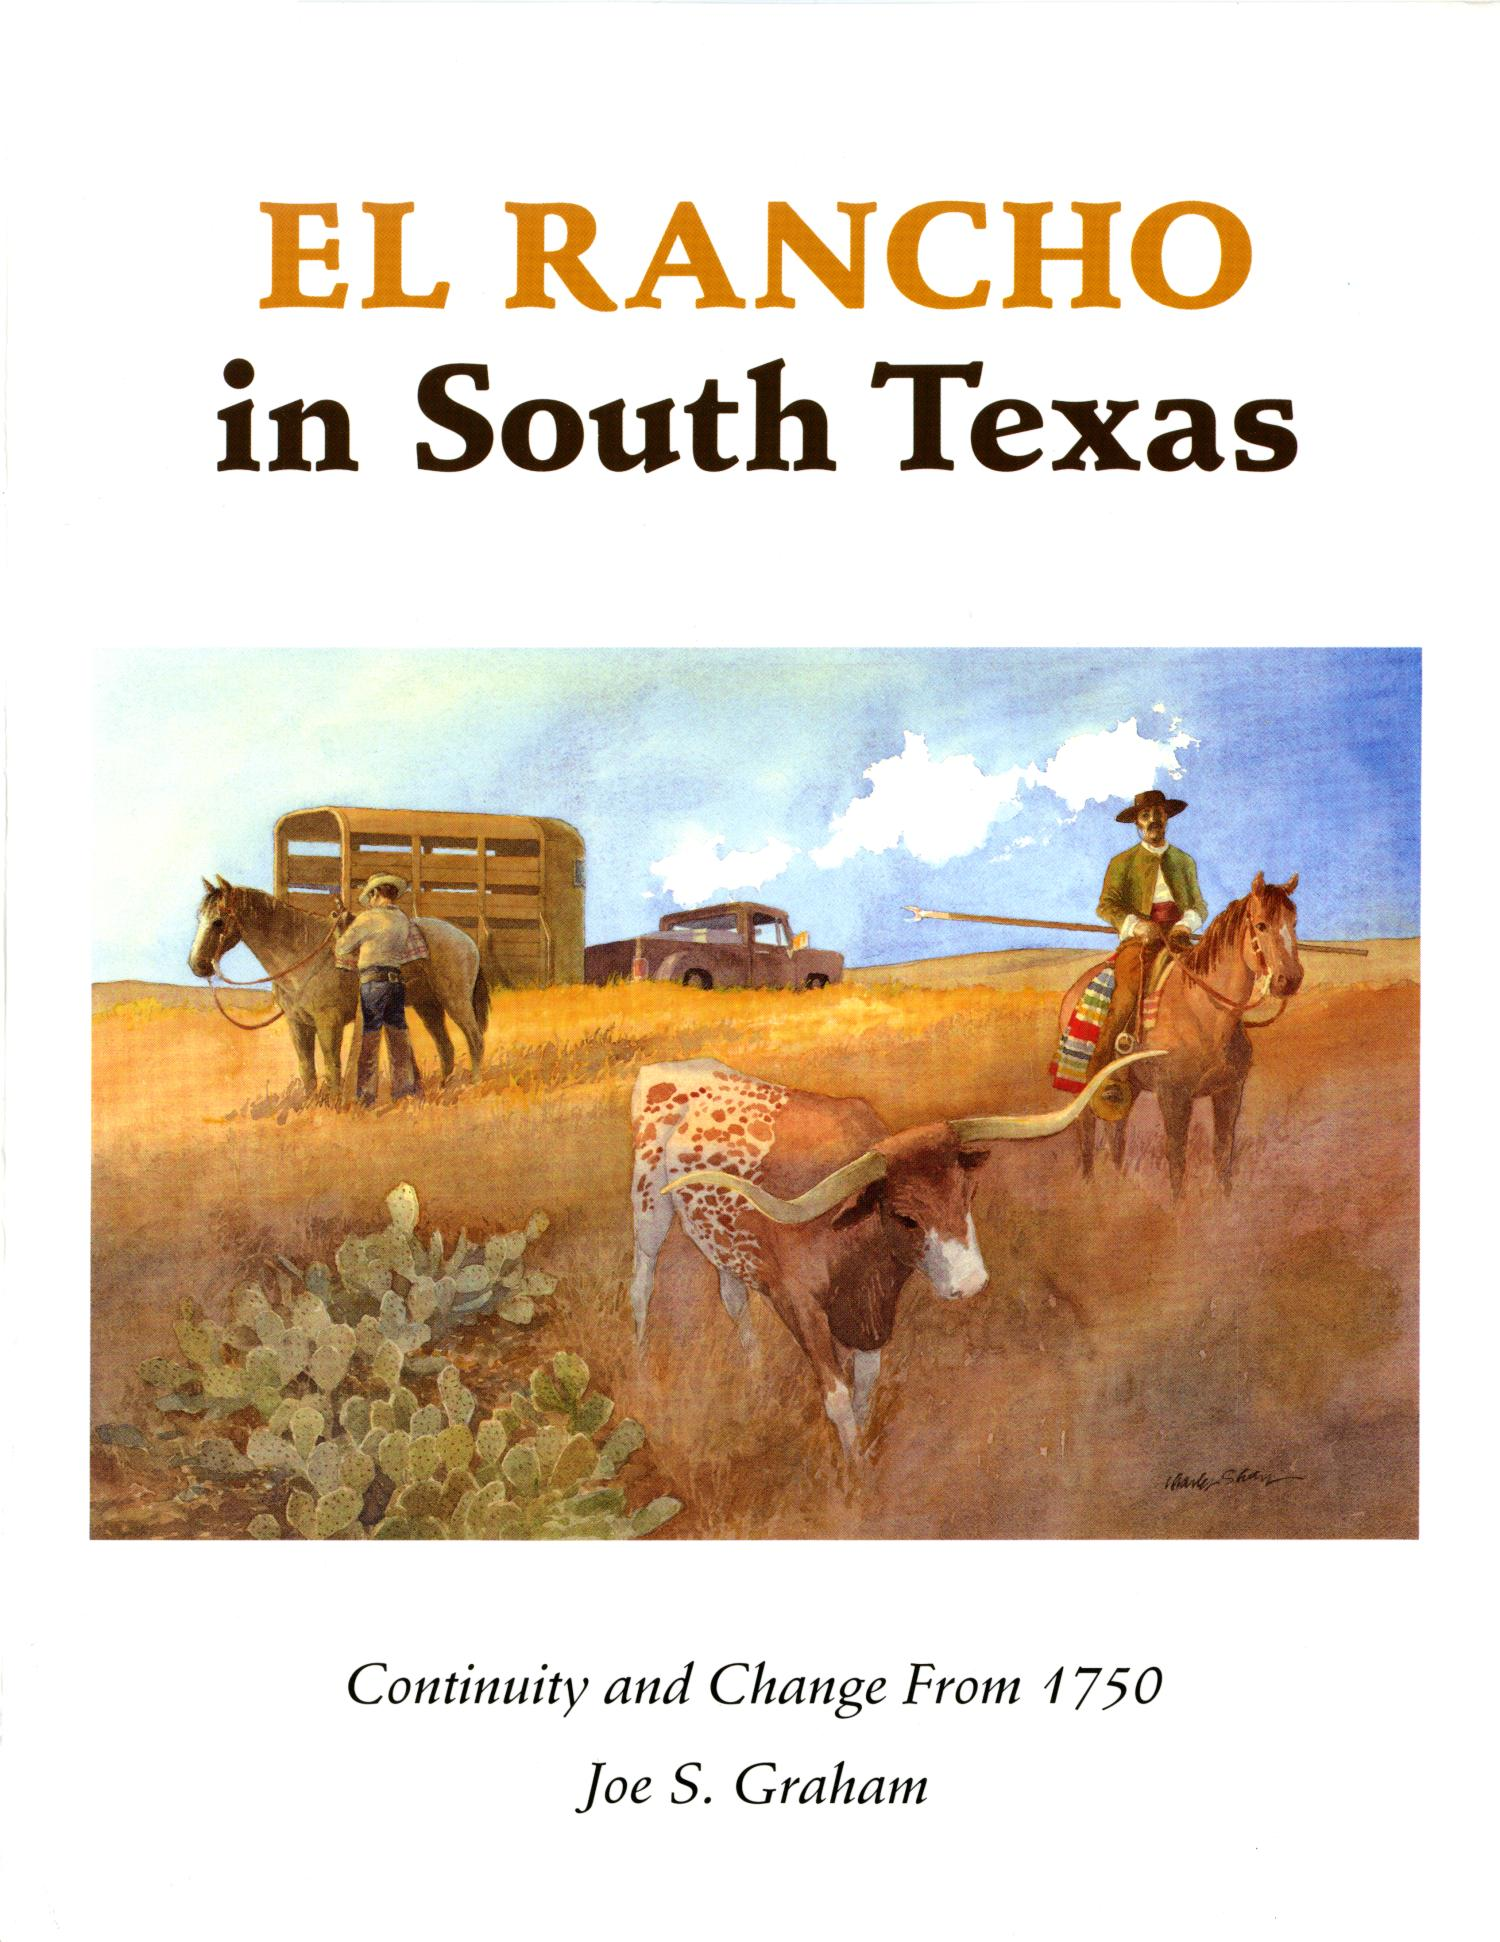 El Rancho in South Texas: Continuity and Change From 1750                                                                                                      Front Cover